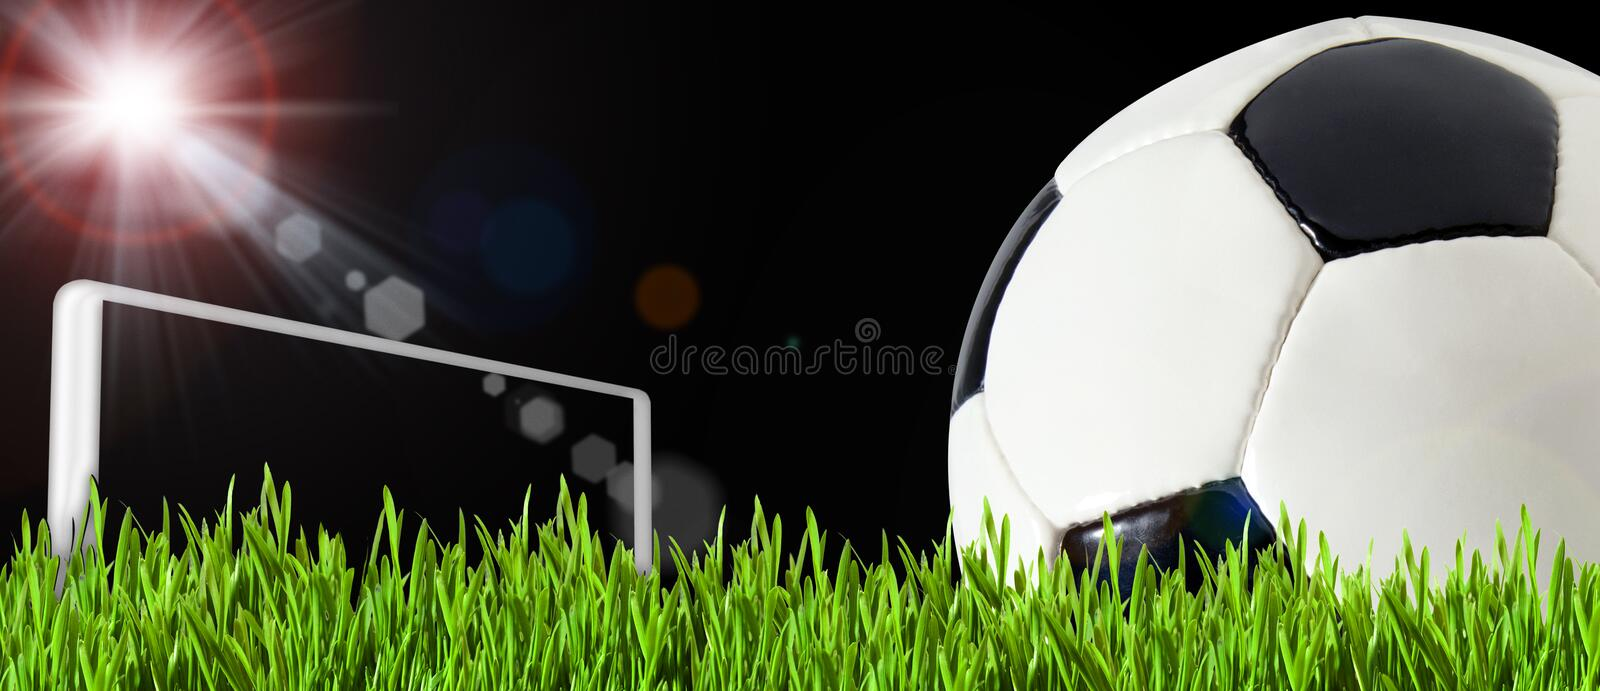 Soccer Ball On The Green Play Field Royalty Free Stock Images